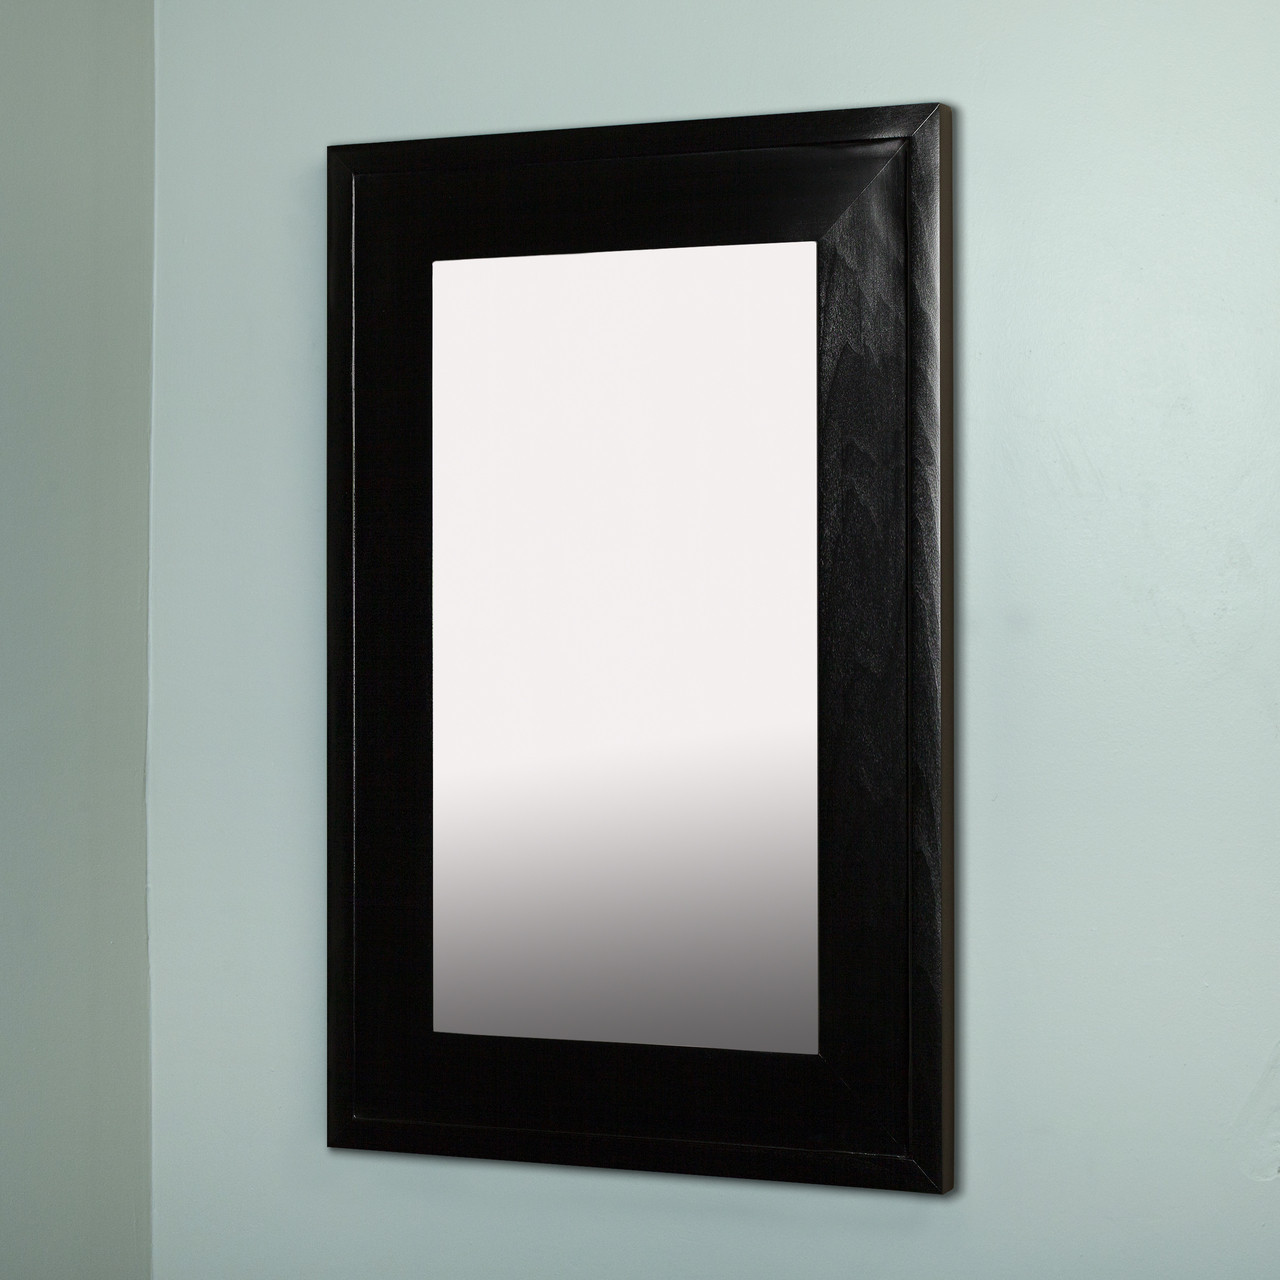 Extra Large White Concealed Cabinet Recessed In Wall Medicine